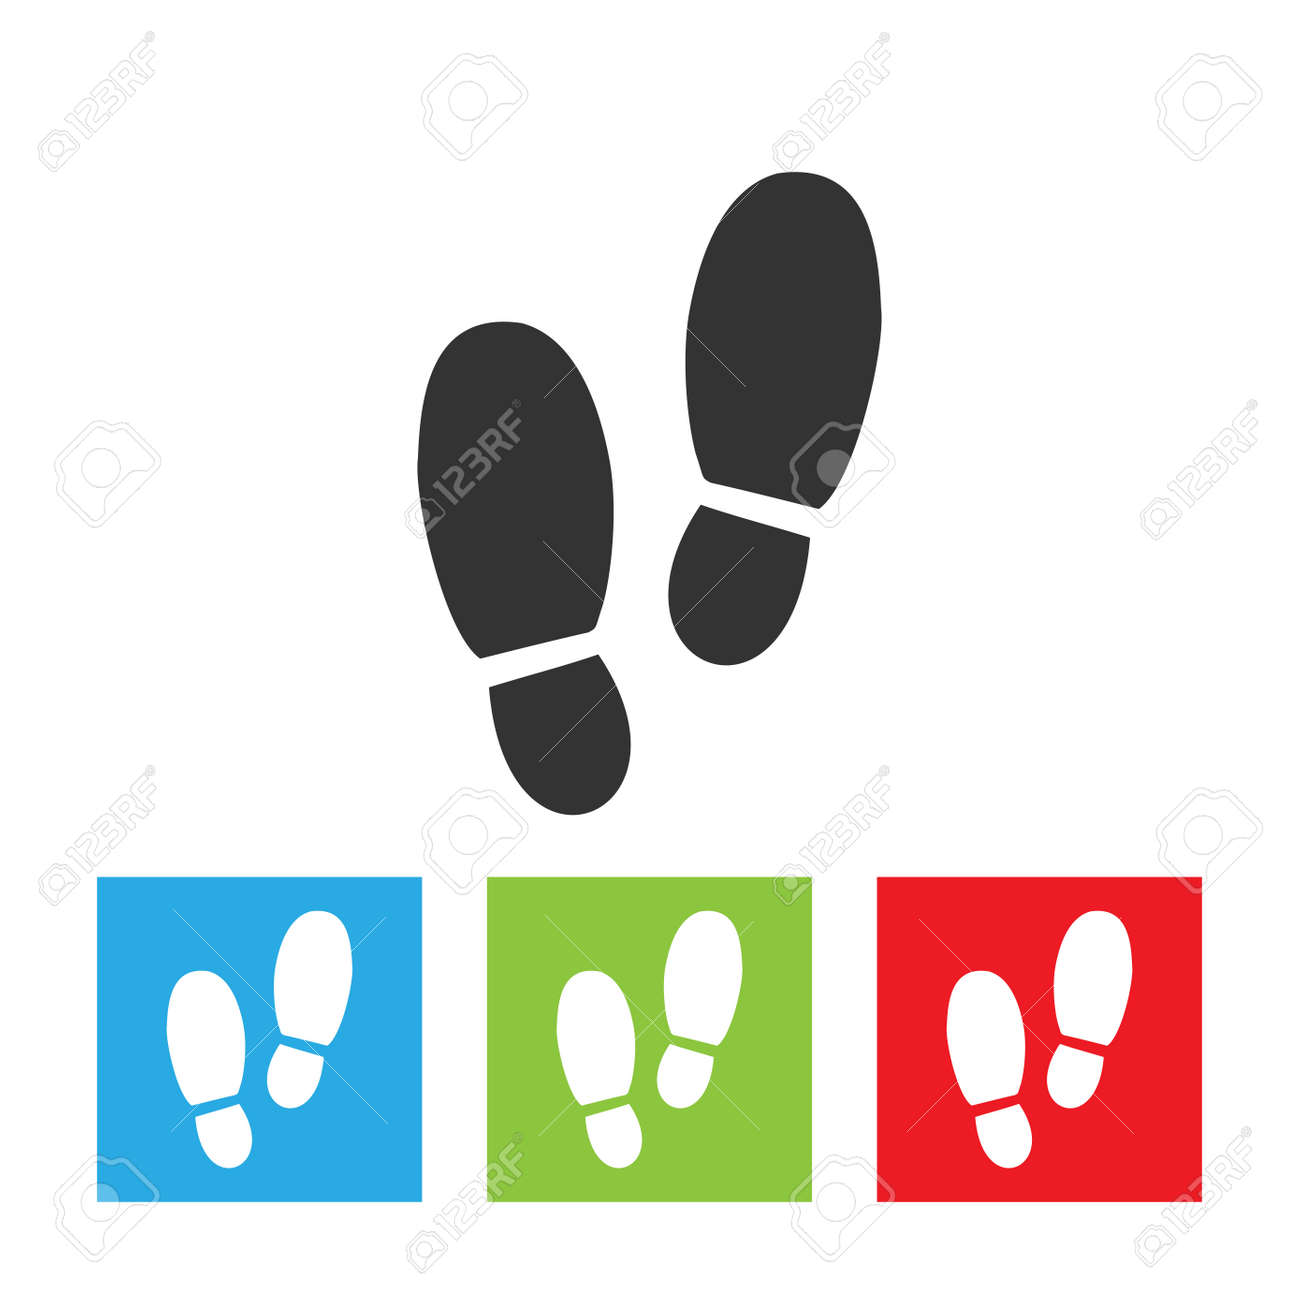 Man footprints icon. Simple logo of footprints isolated on white background. Flat vector illustration. - 110559457